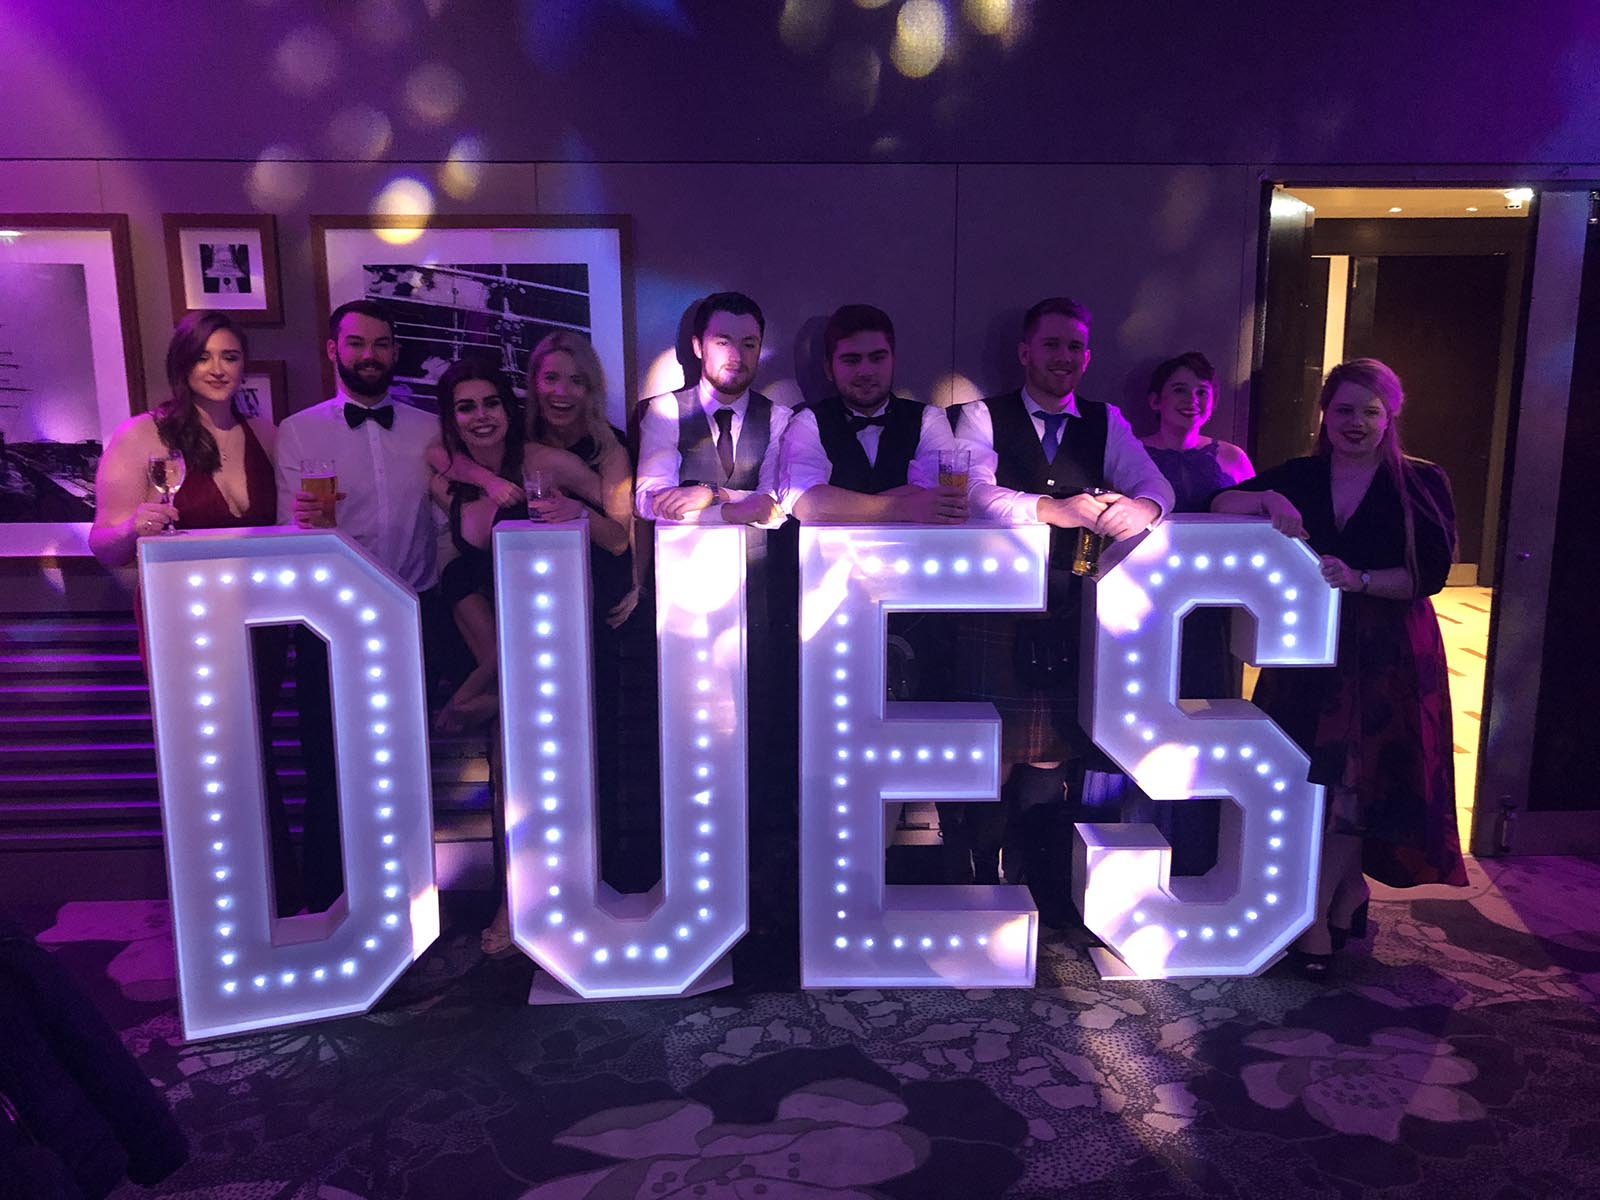 Giant letter hire for Dundee University students at The Apex Hotel in Dundee.